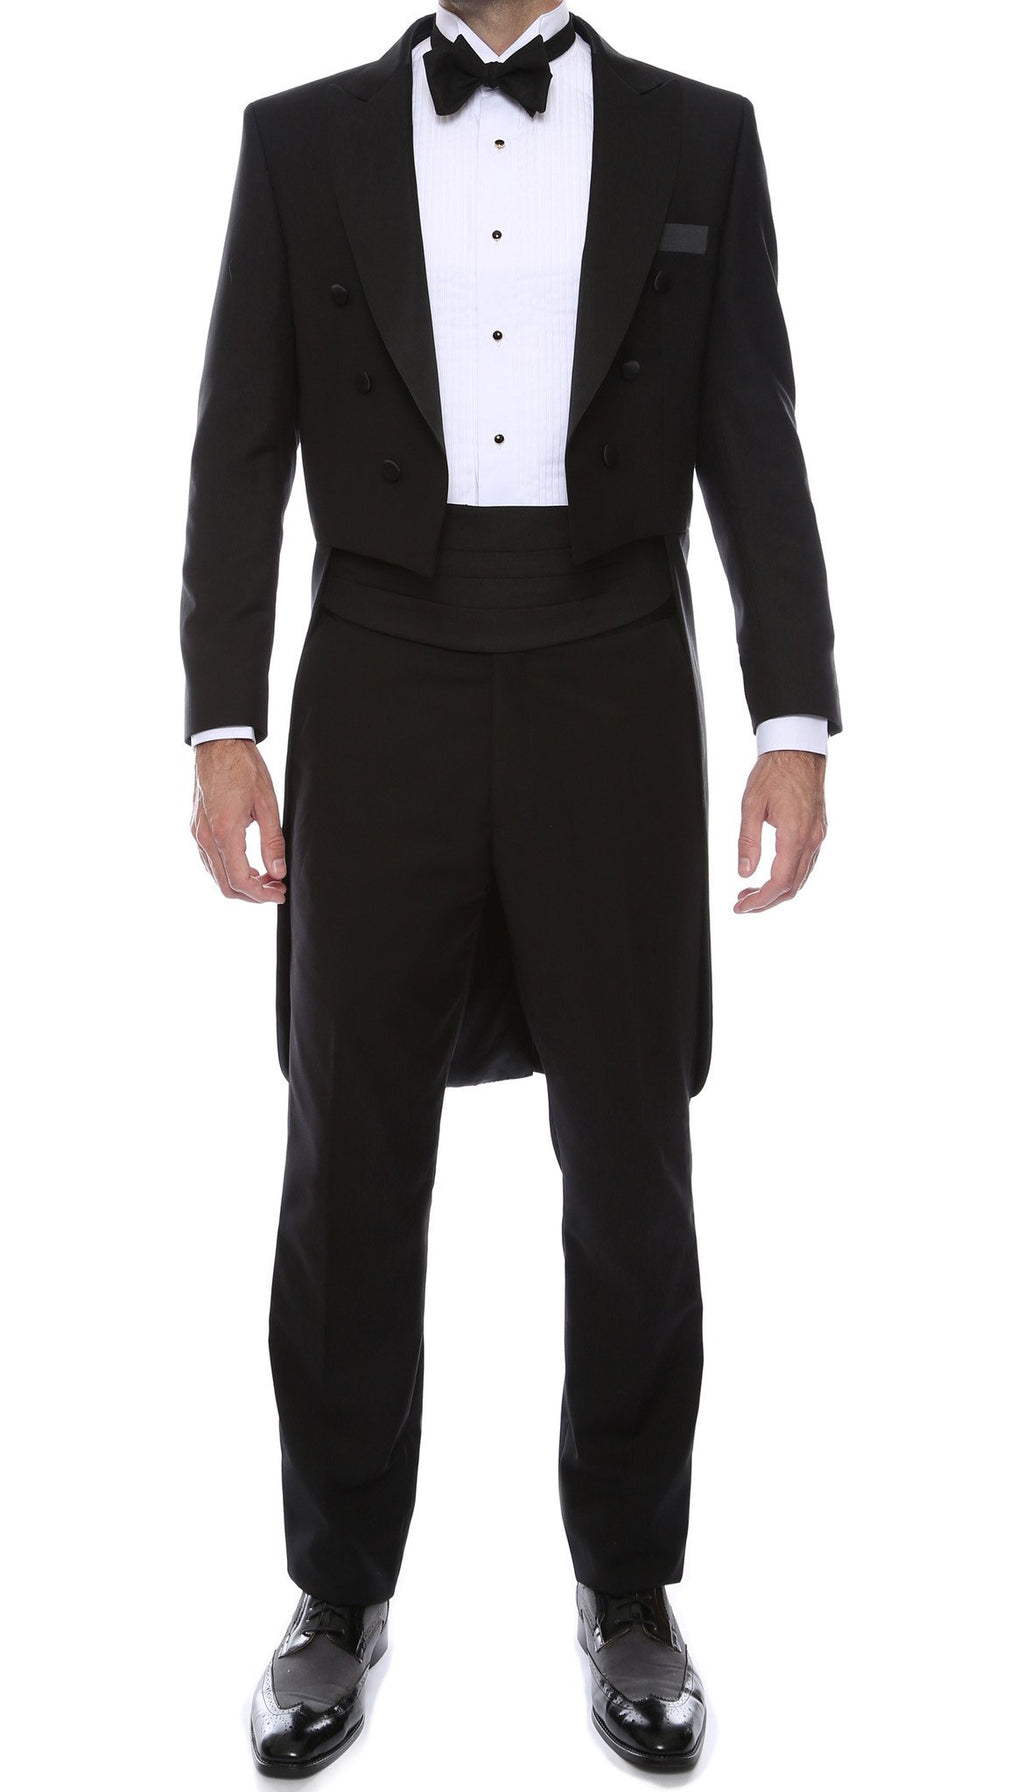 Ferrecci Men's Regular Fit Peak Lapel Black Tailcoat Tuxedo Set - Giorgio's Menswear